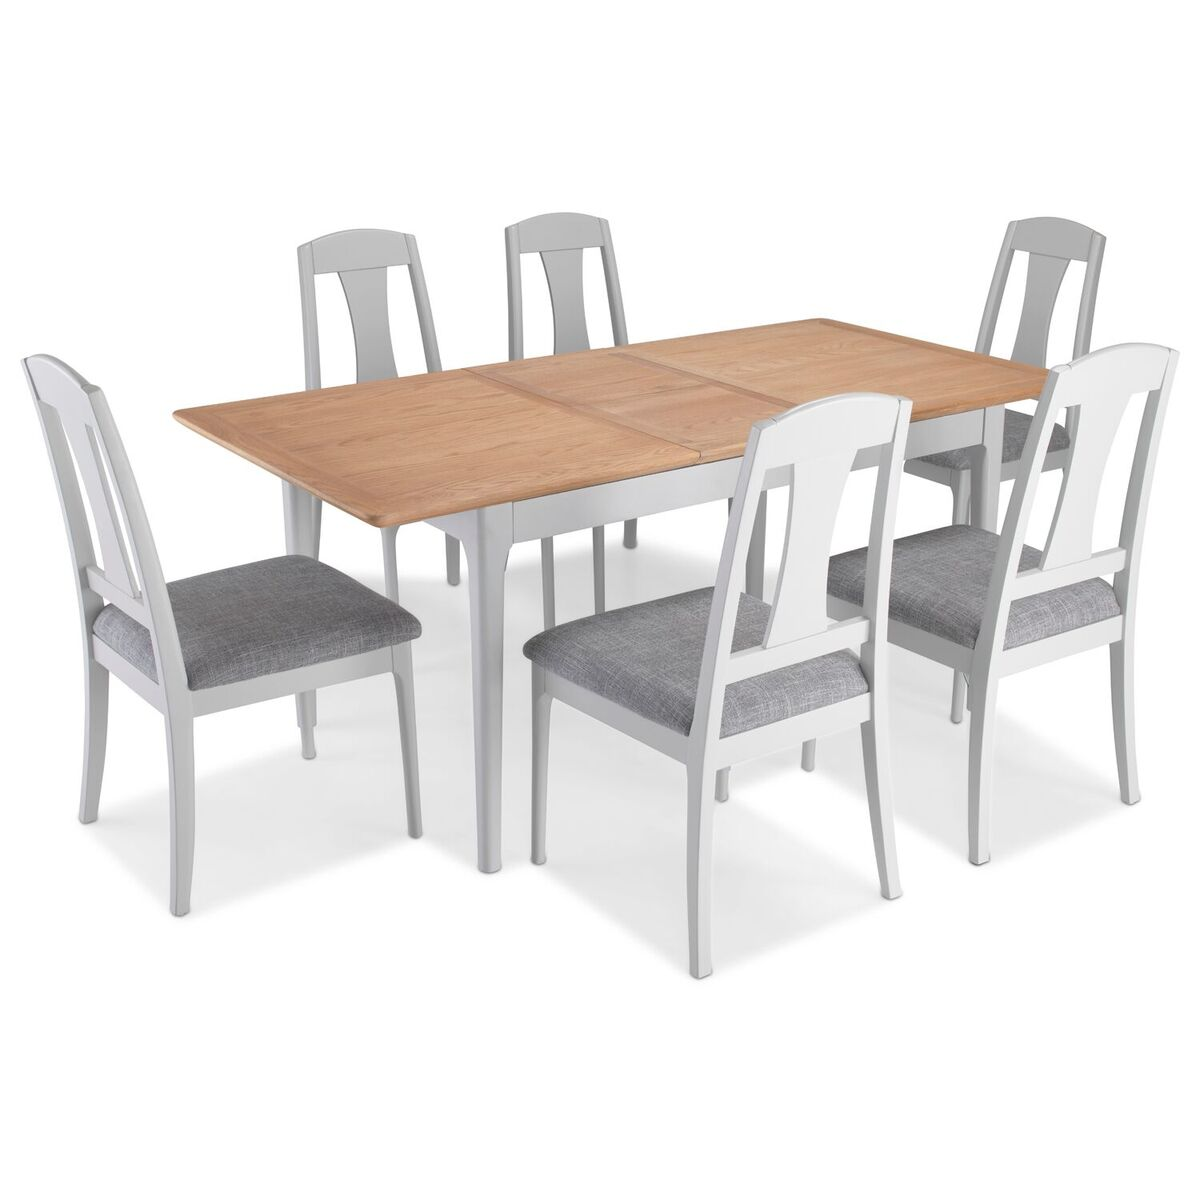 Hereford Astley Extending Table & 6 Chairs